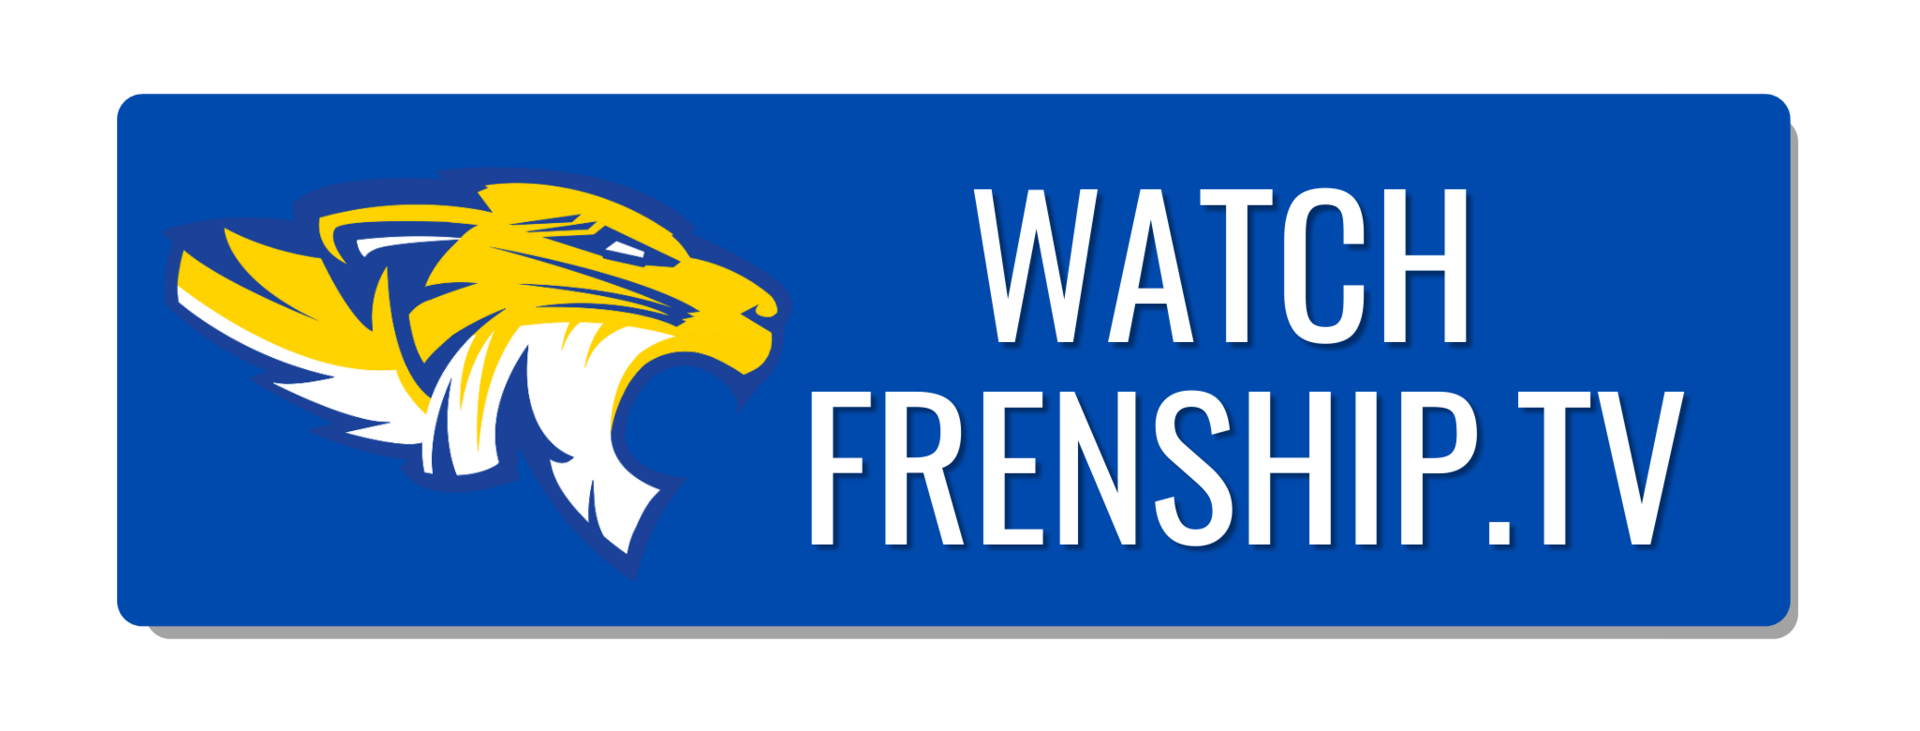 click to watch frenship.tv